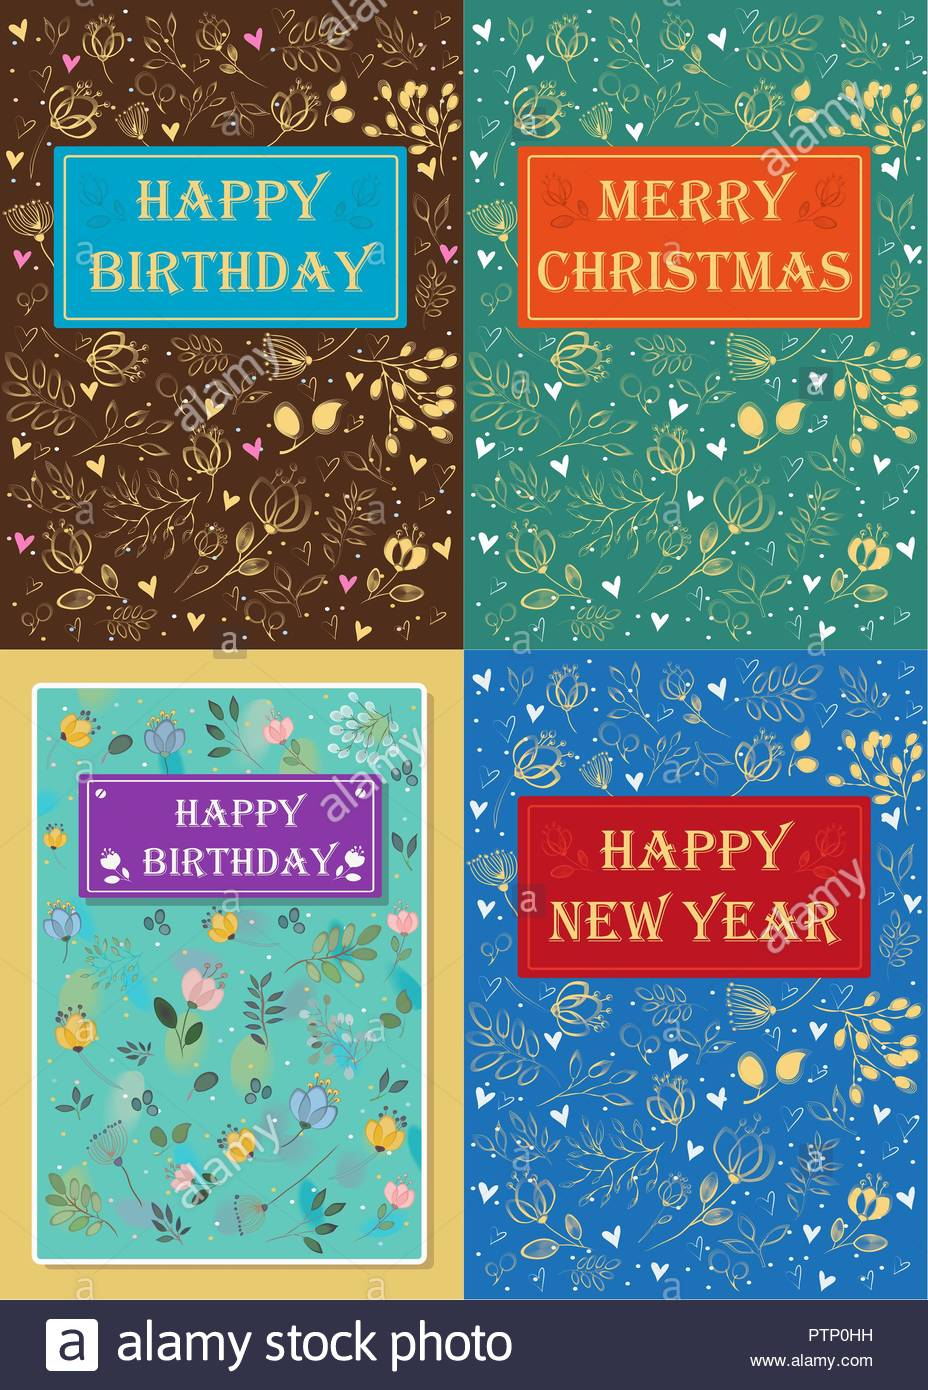 Set Of Floral Greeting Cards Happy Birthday New Year Merry